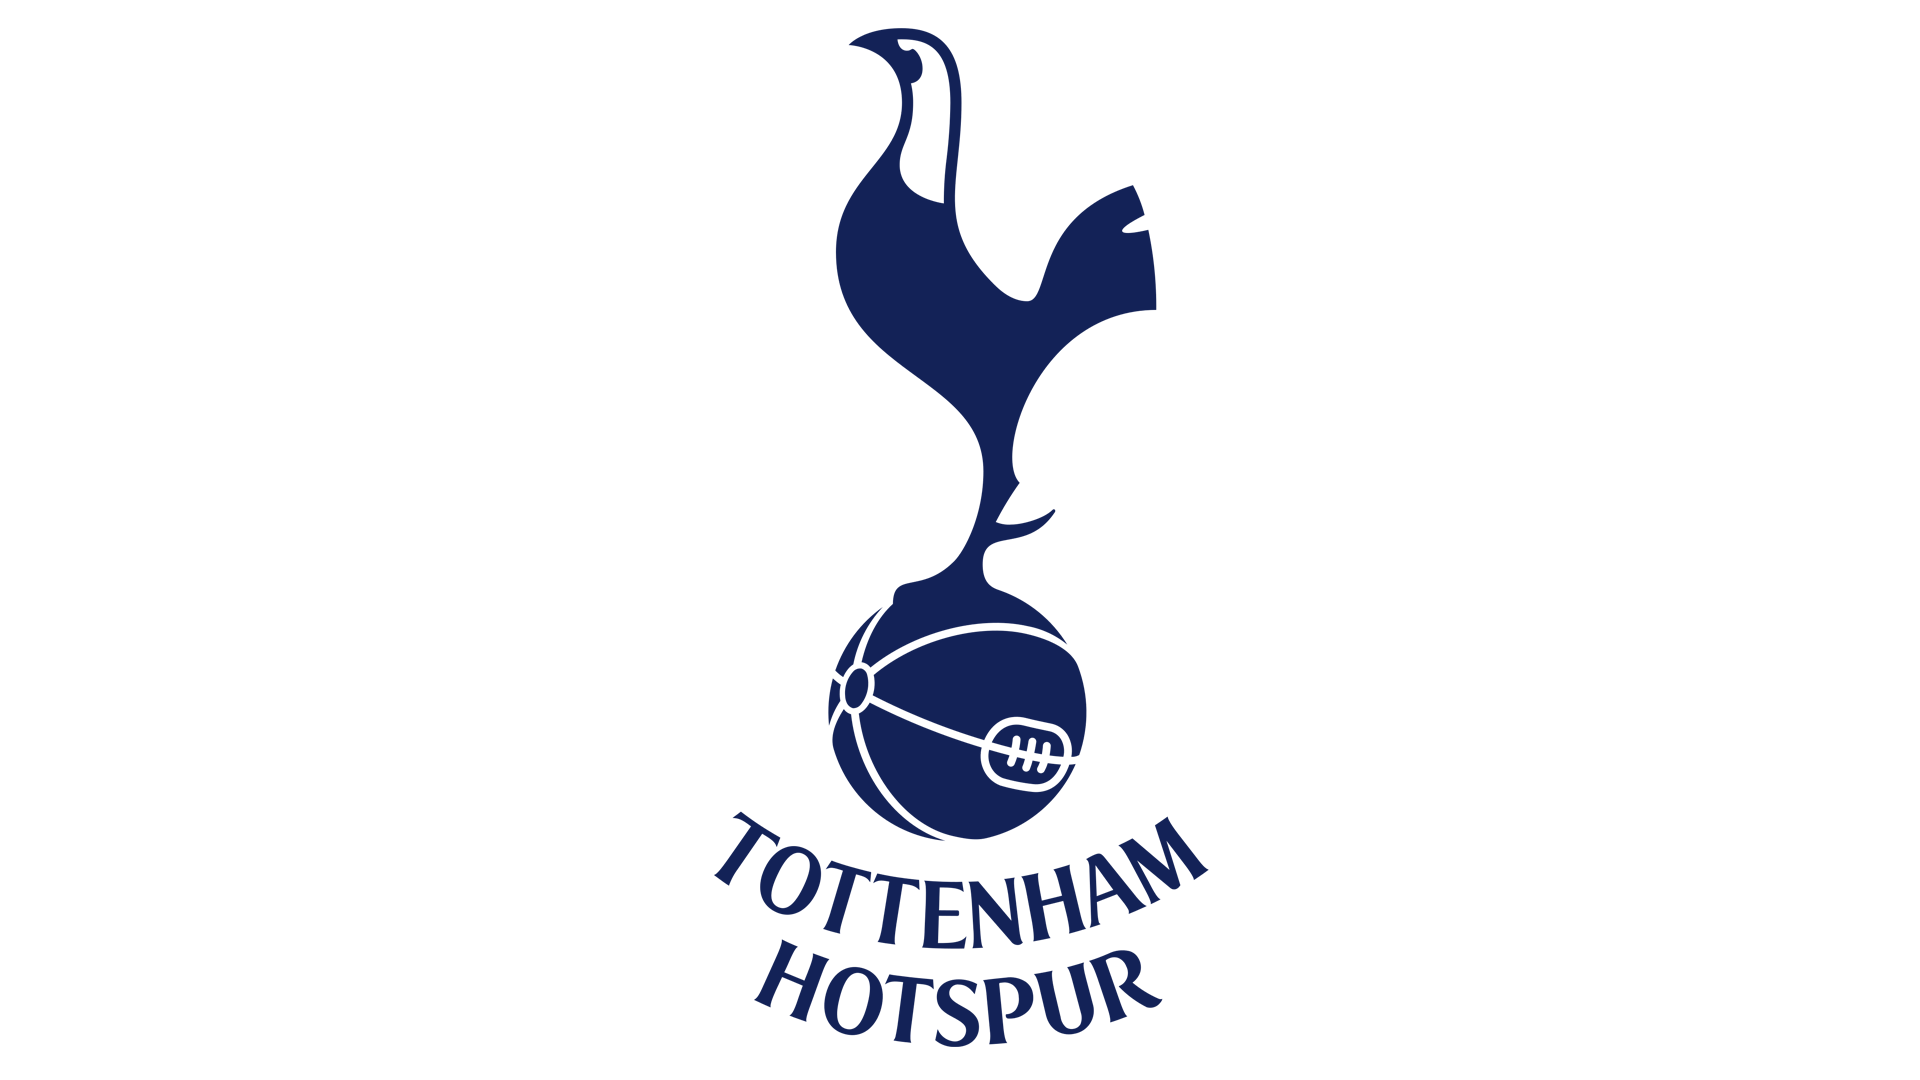 Tottenham (Inquisitor)